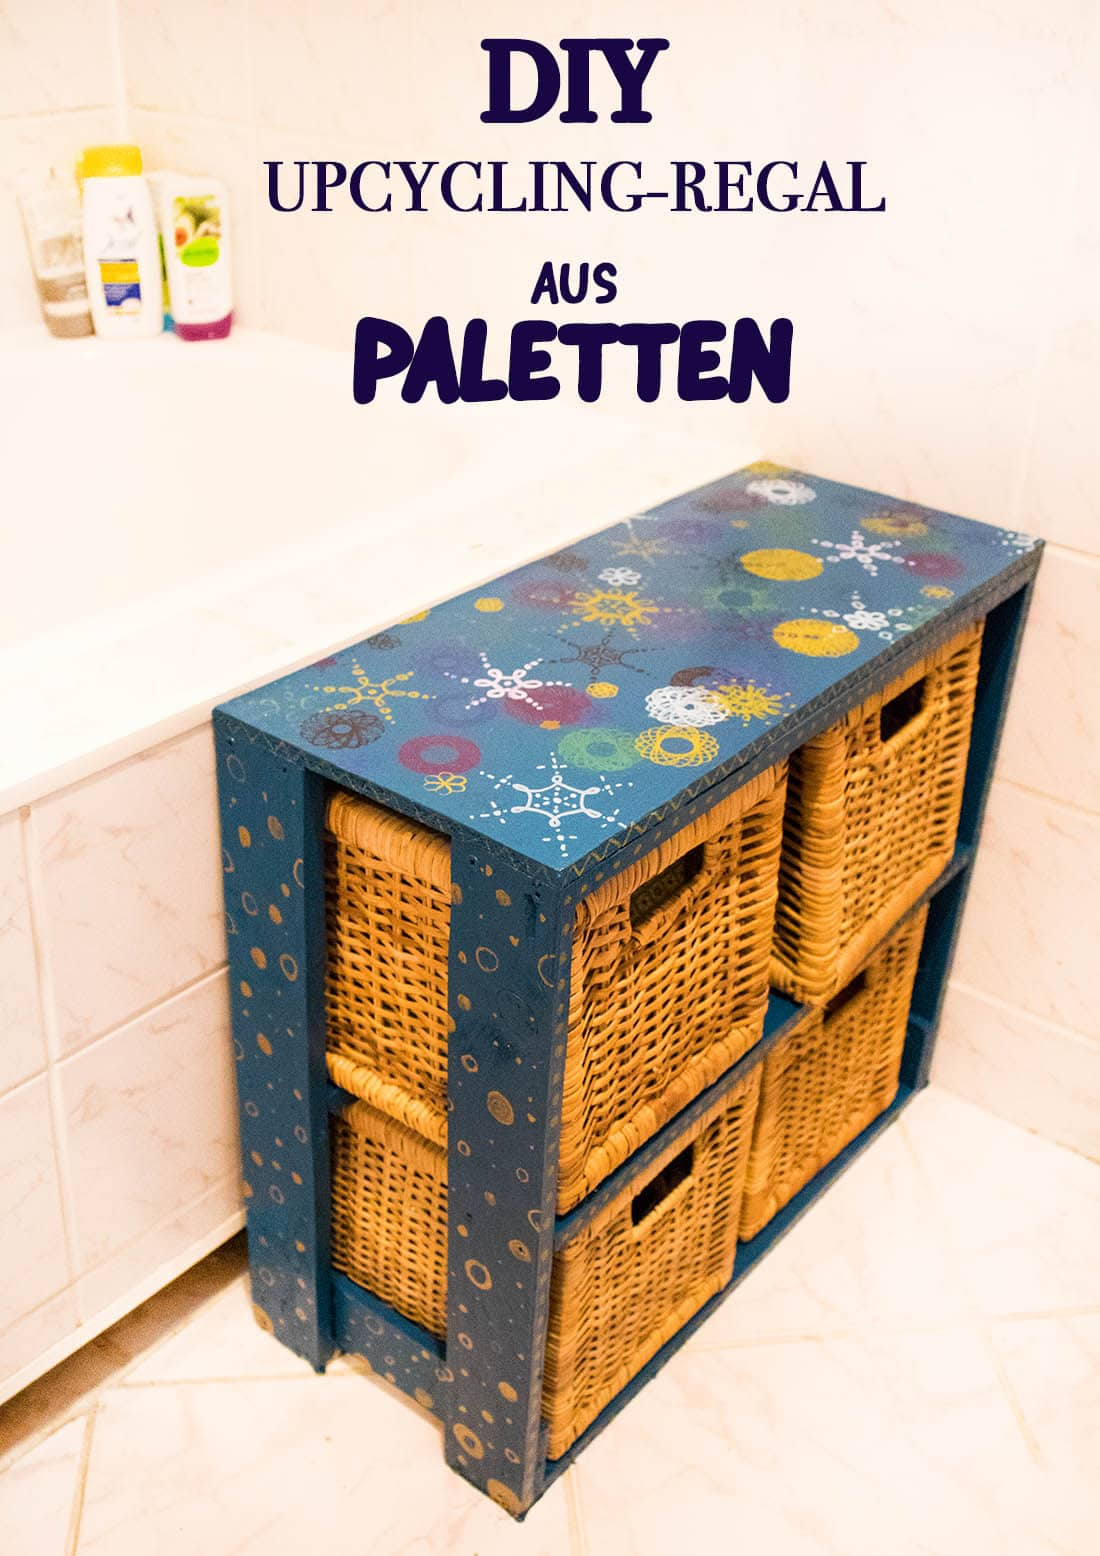 Regal Aus Paletten Upcycling Regal Aus Paletten Bauen Do It Yourself Diy